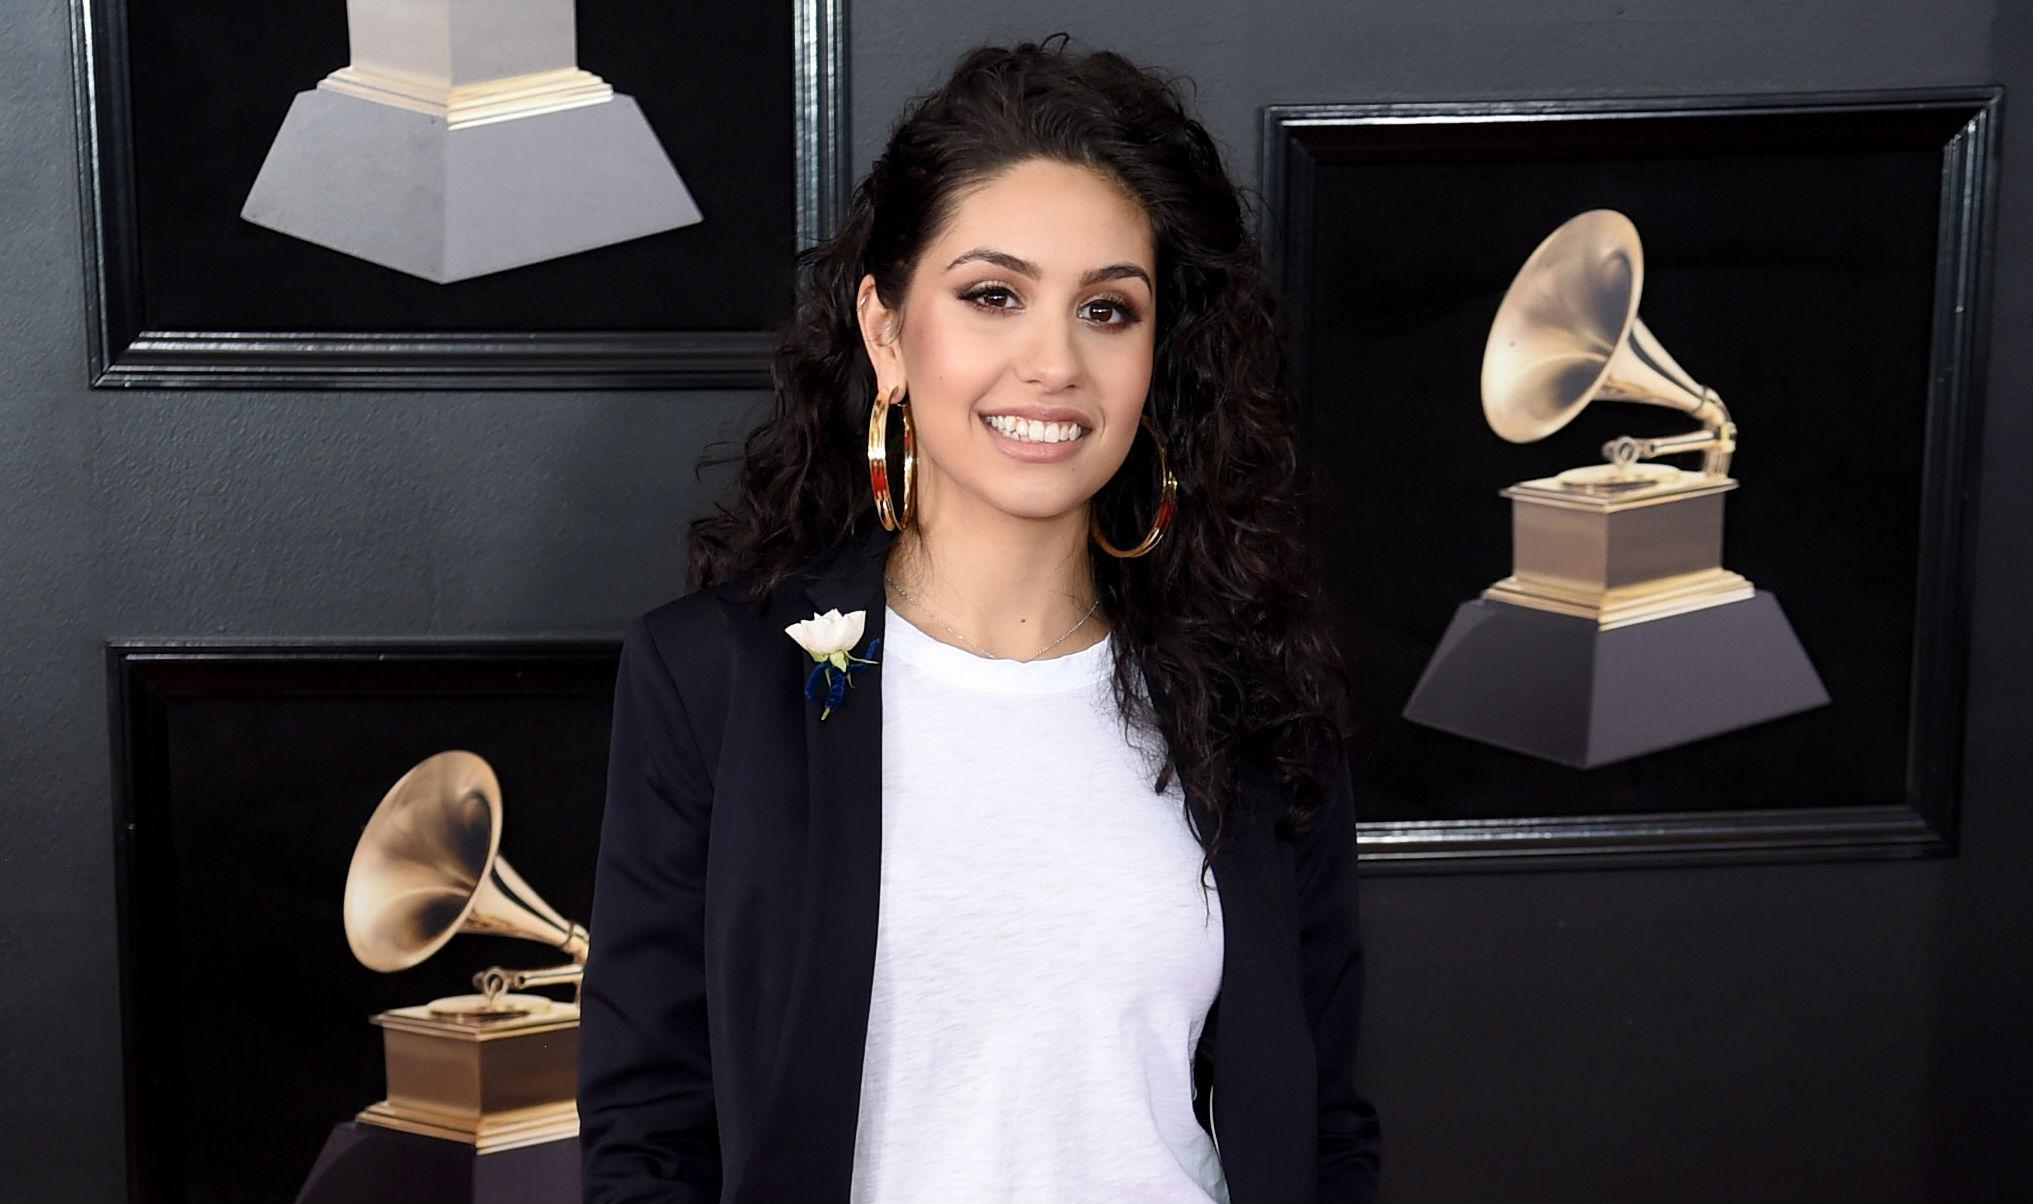 Grammys: Dream comes true for Youtuber Alessia Cara